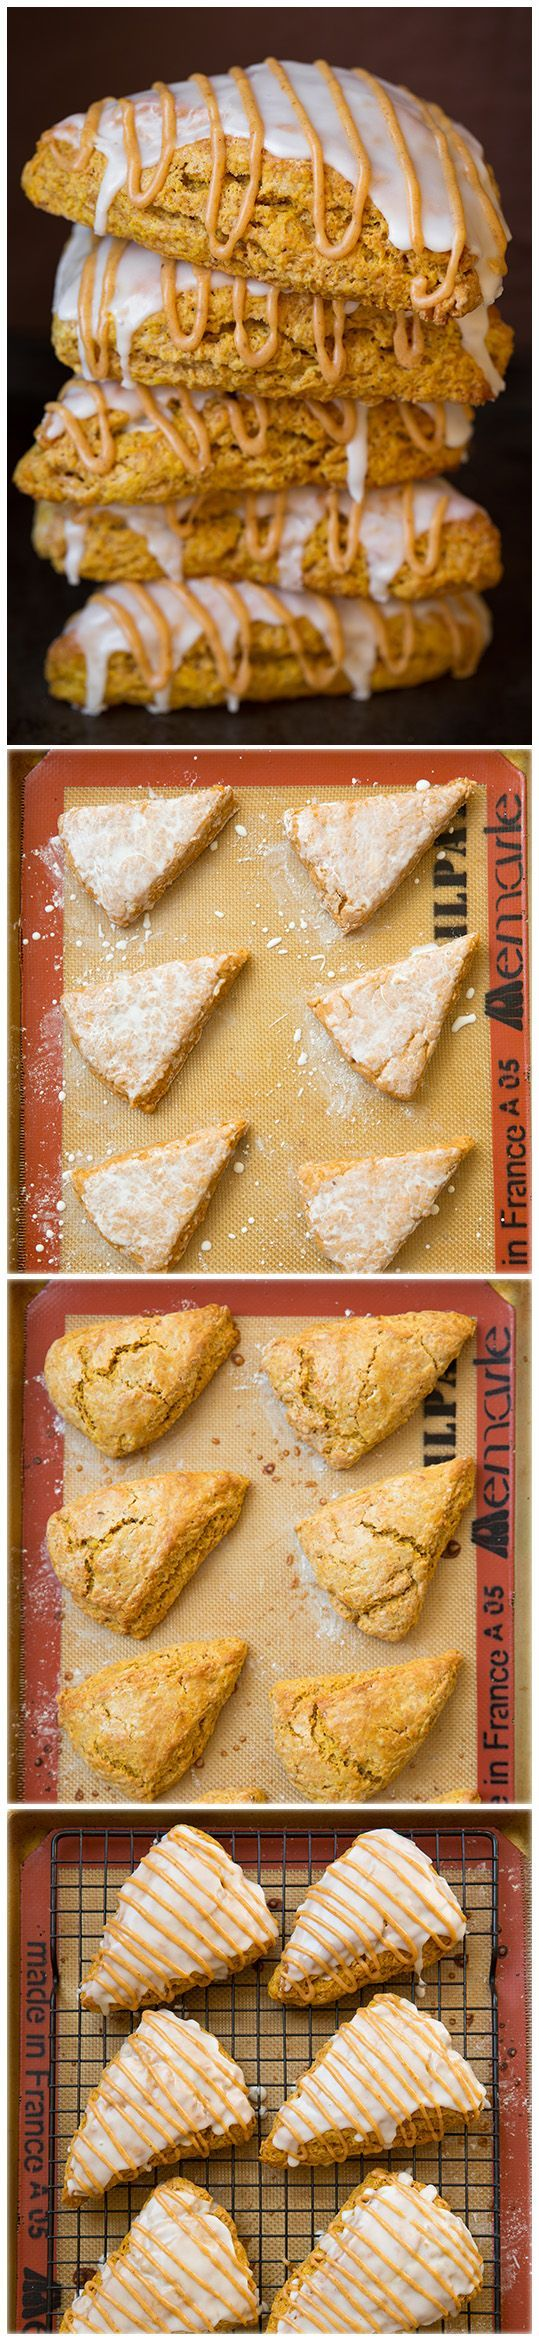 Copycat Starbucks Pumpkin Scones - these are one of the best scones I've ever had! Seriously loved these! Great recipe!